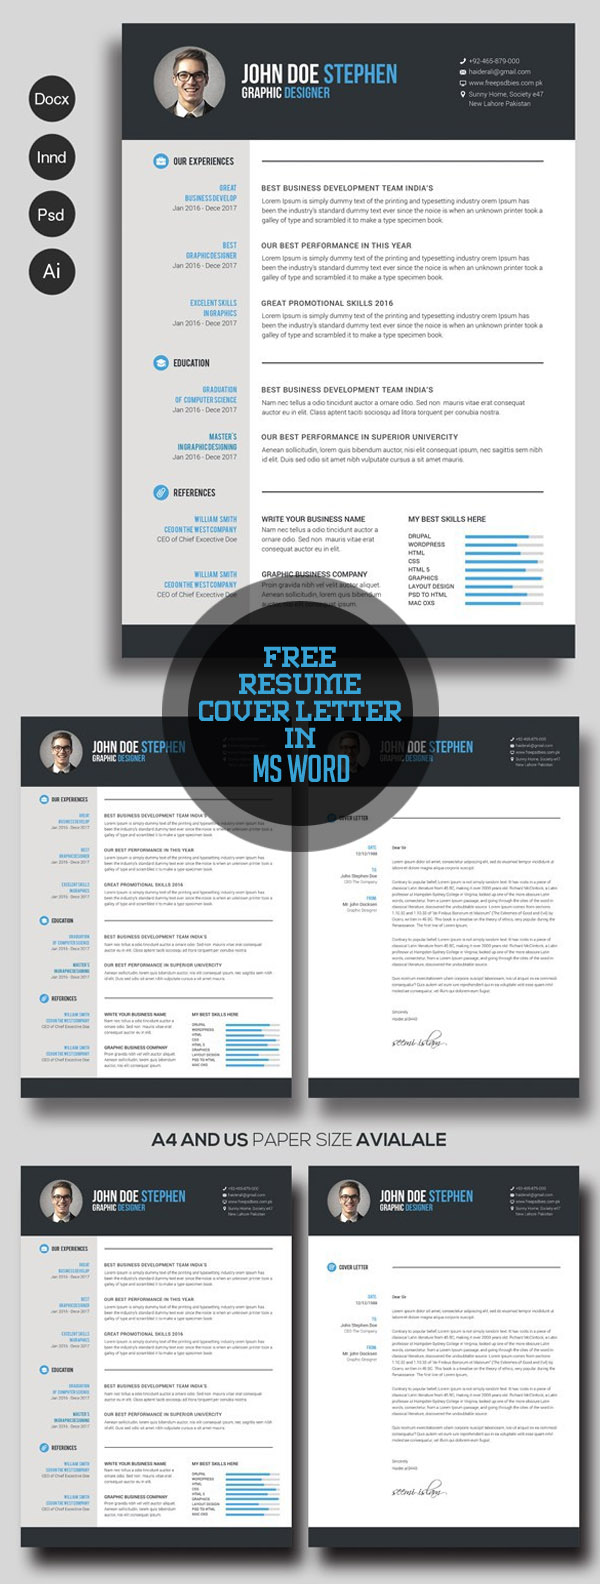 Free Resume U0026 Cover Letter In Ms Word